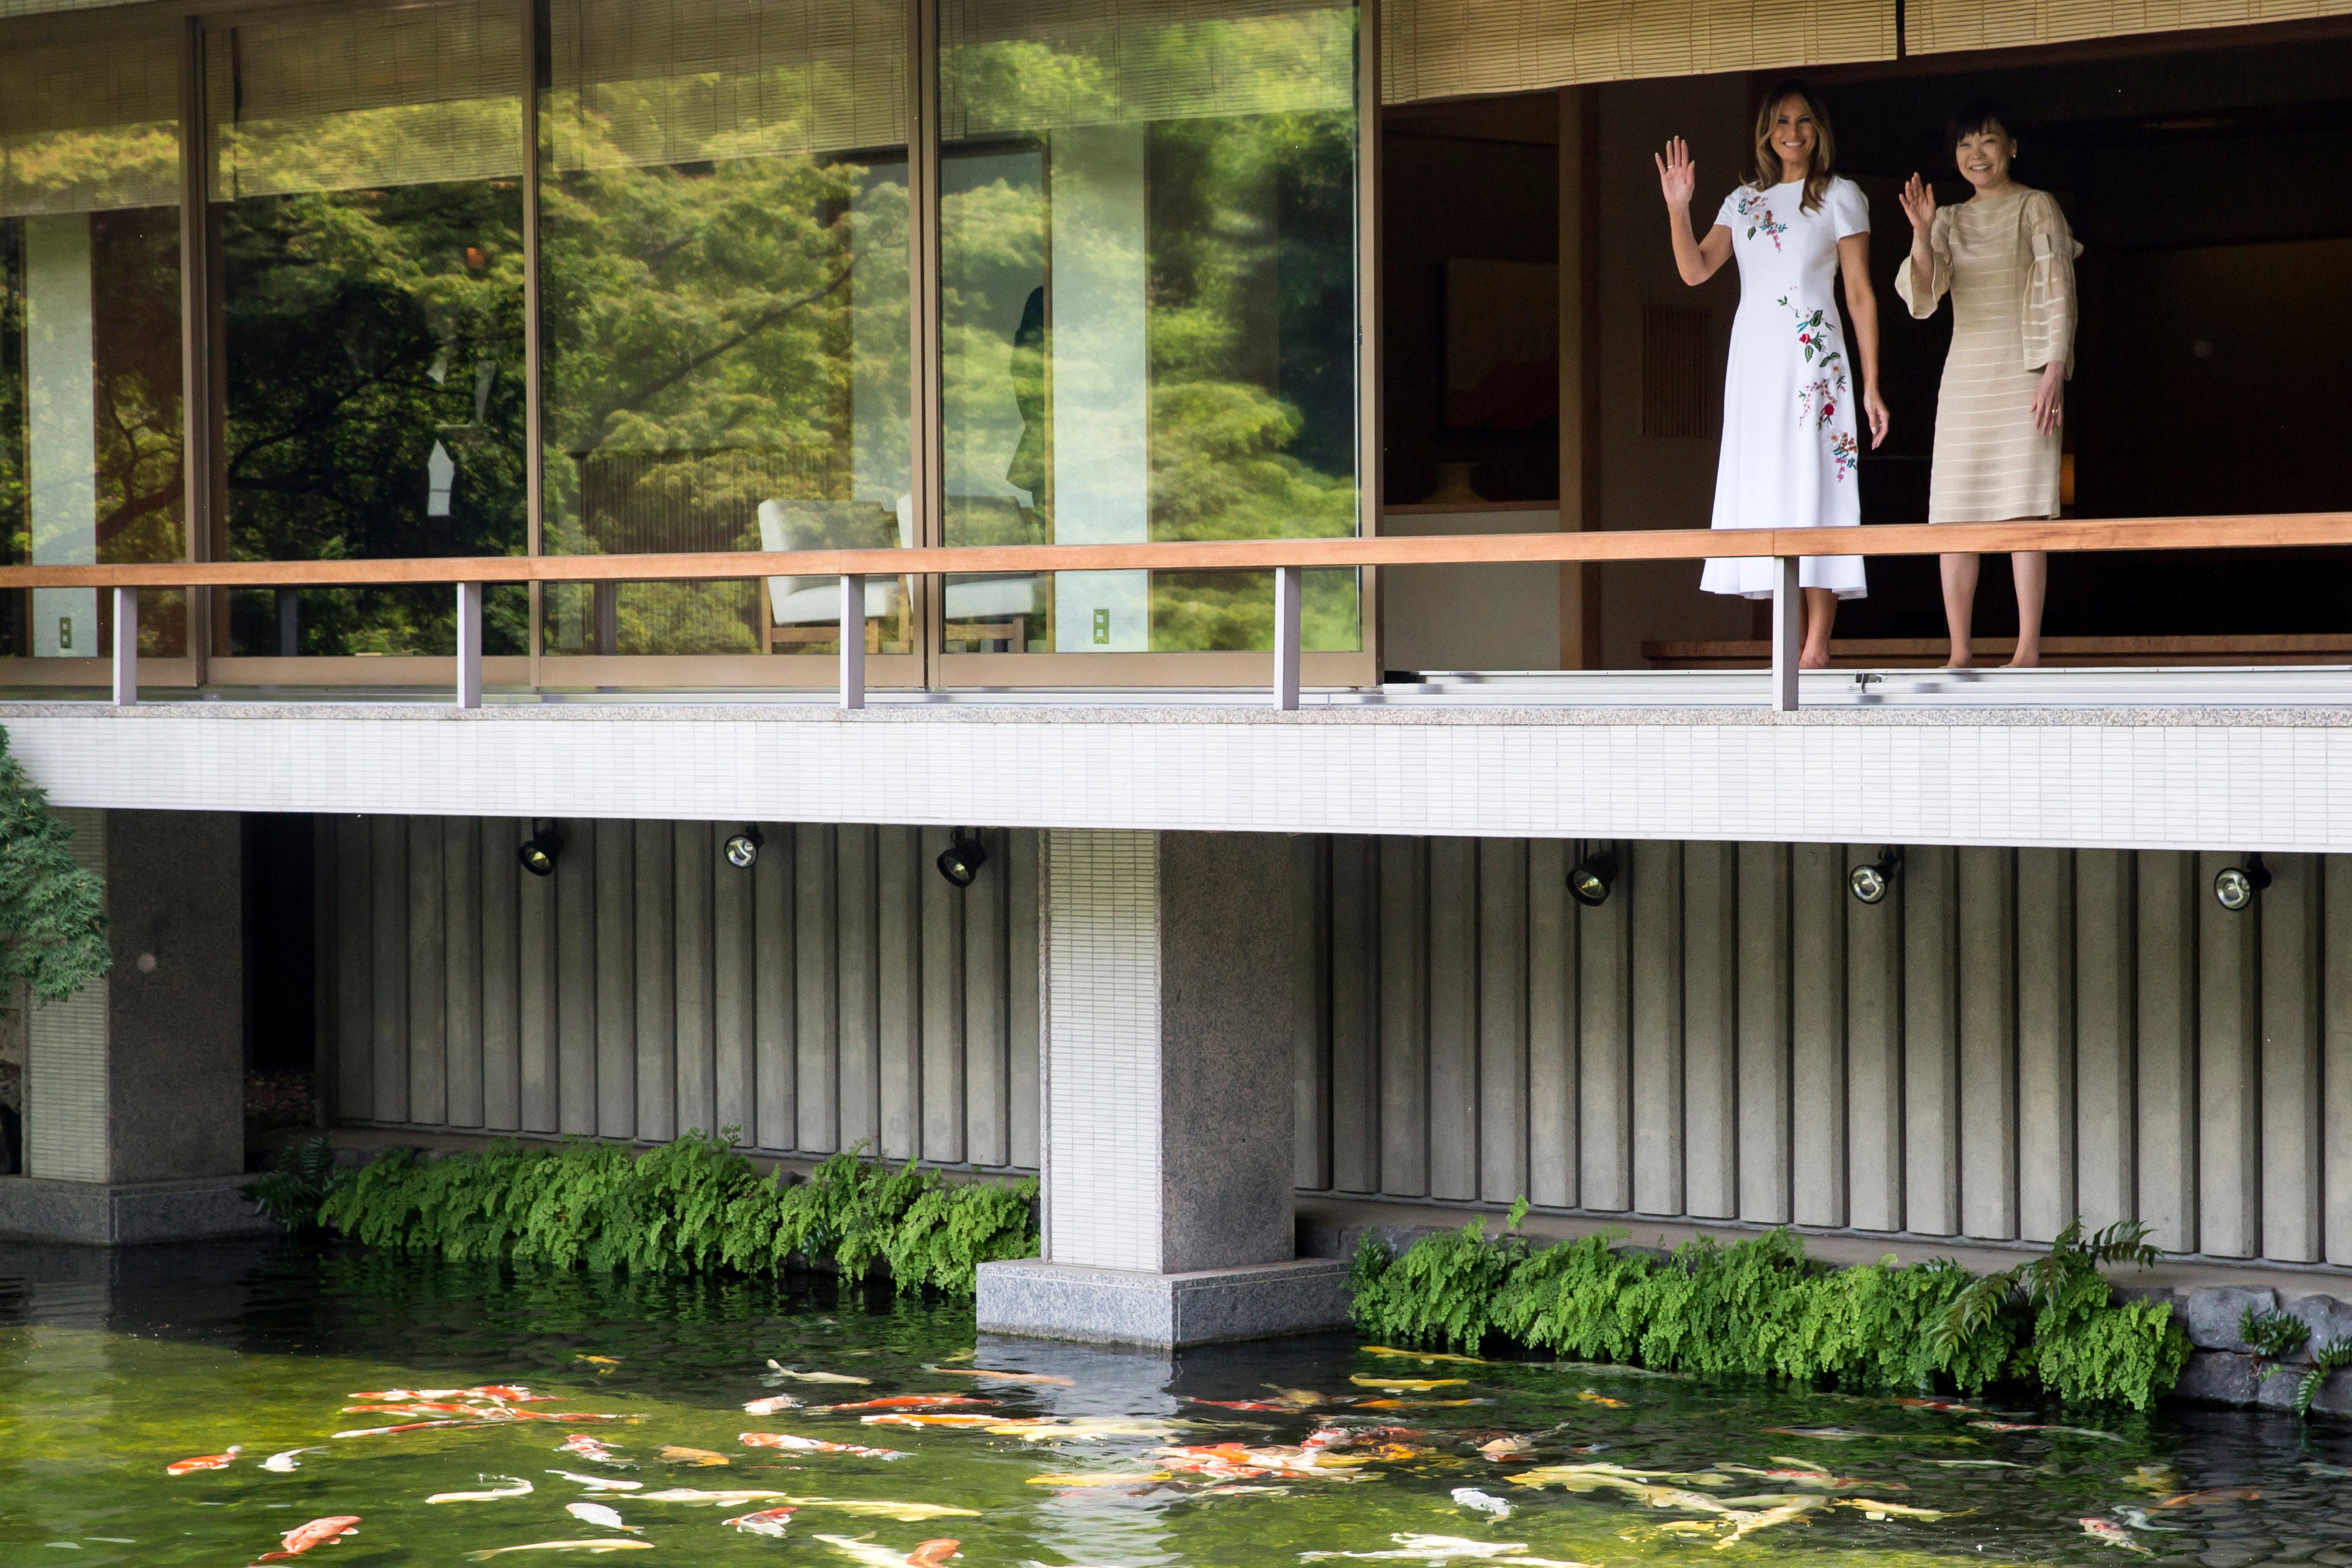 US First Lady Melania Trump (L) and Akie Abe, wife of Japanese Prime Minister Shinzo Abe (R) wave after looking at koi carps in a pond at the Japanese style annex inside the State Guest House in Tokyo on May 27, 2019. (Photo by TOMOHIRO OHSUMI/AFP/Getty Images)